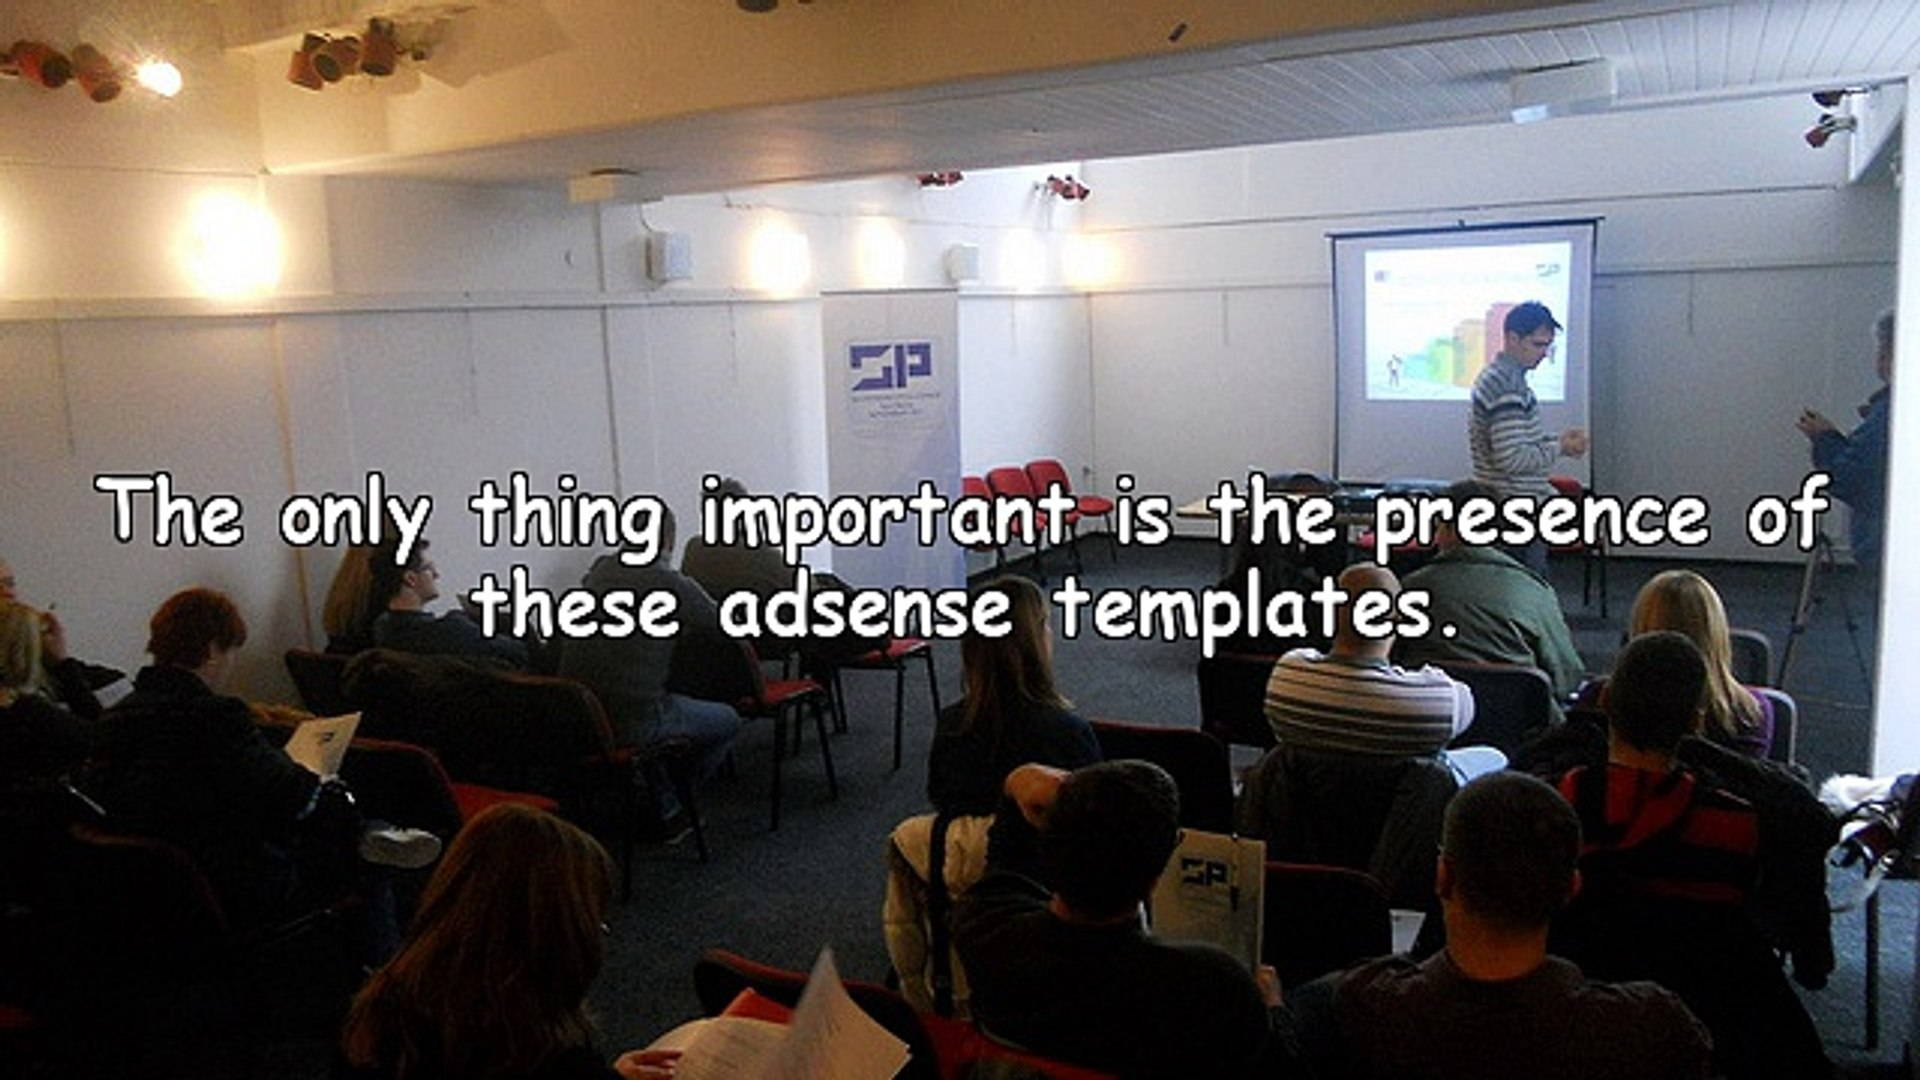 Adsense Template Tips To Income And Sucess... ASAP!